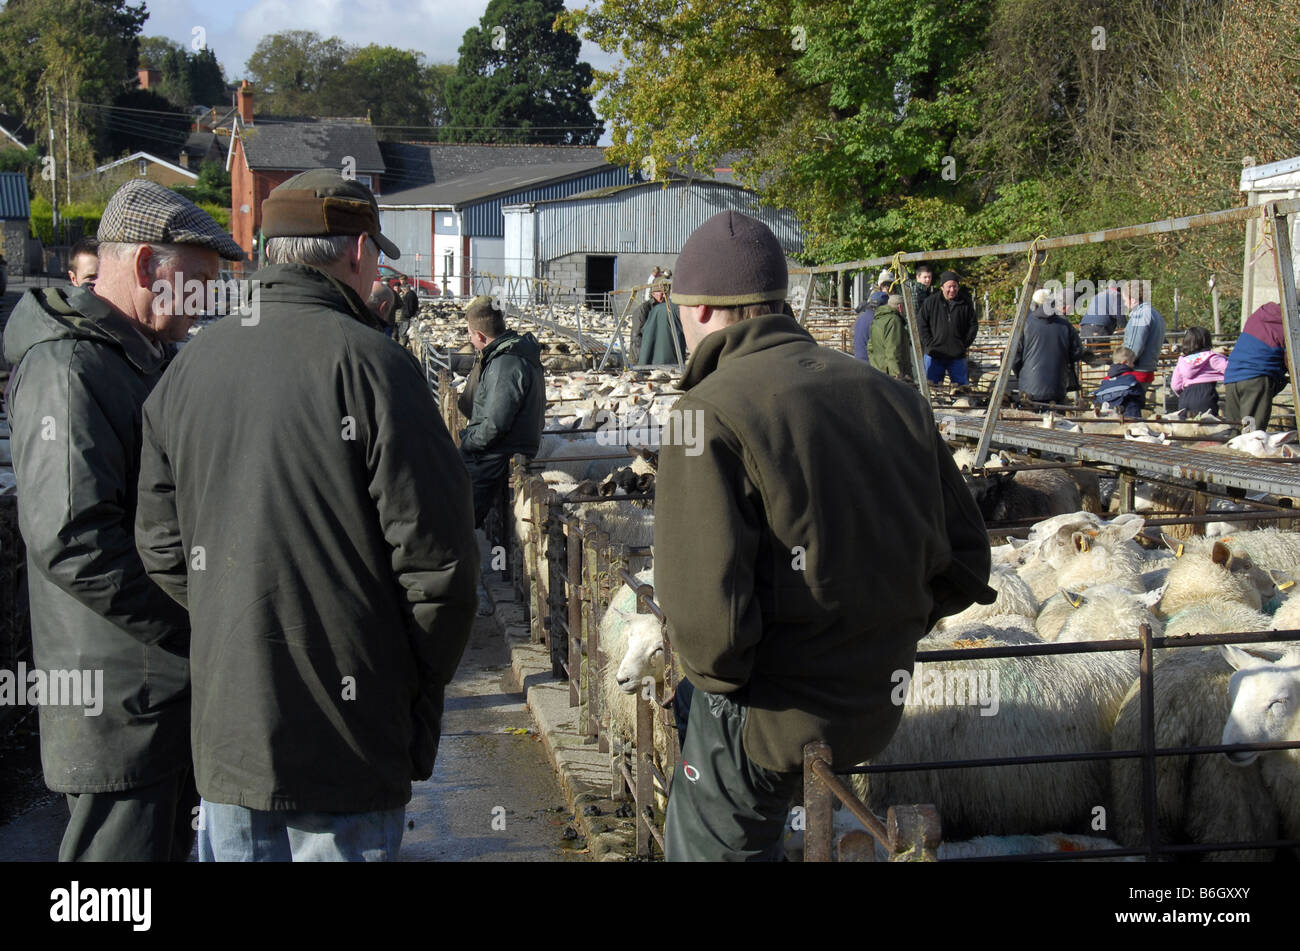 Farmers congregate at sheep pens of a a thriving livestock auction market - Stock Image